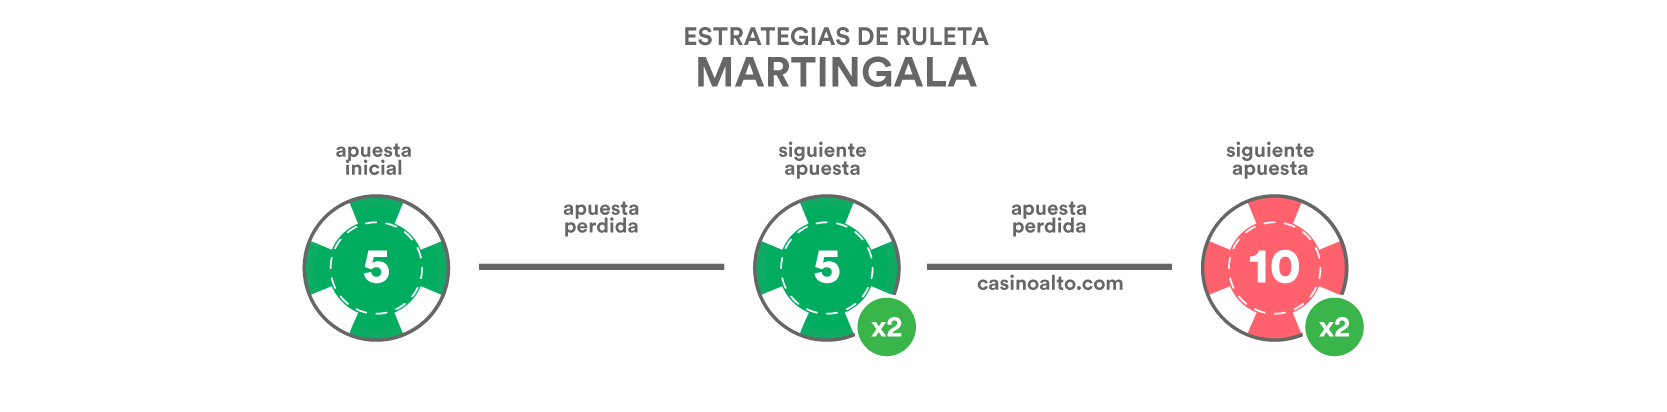 ruleta martingala